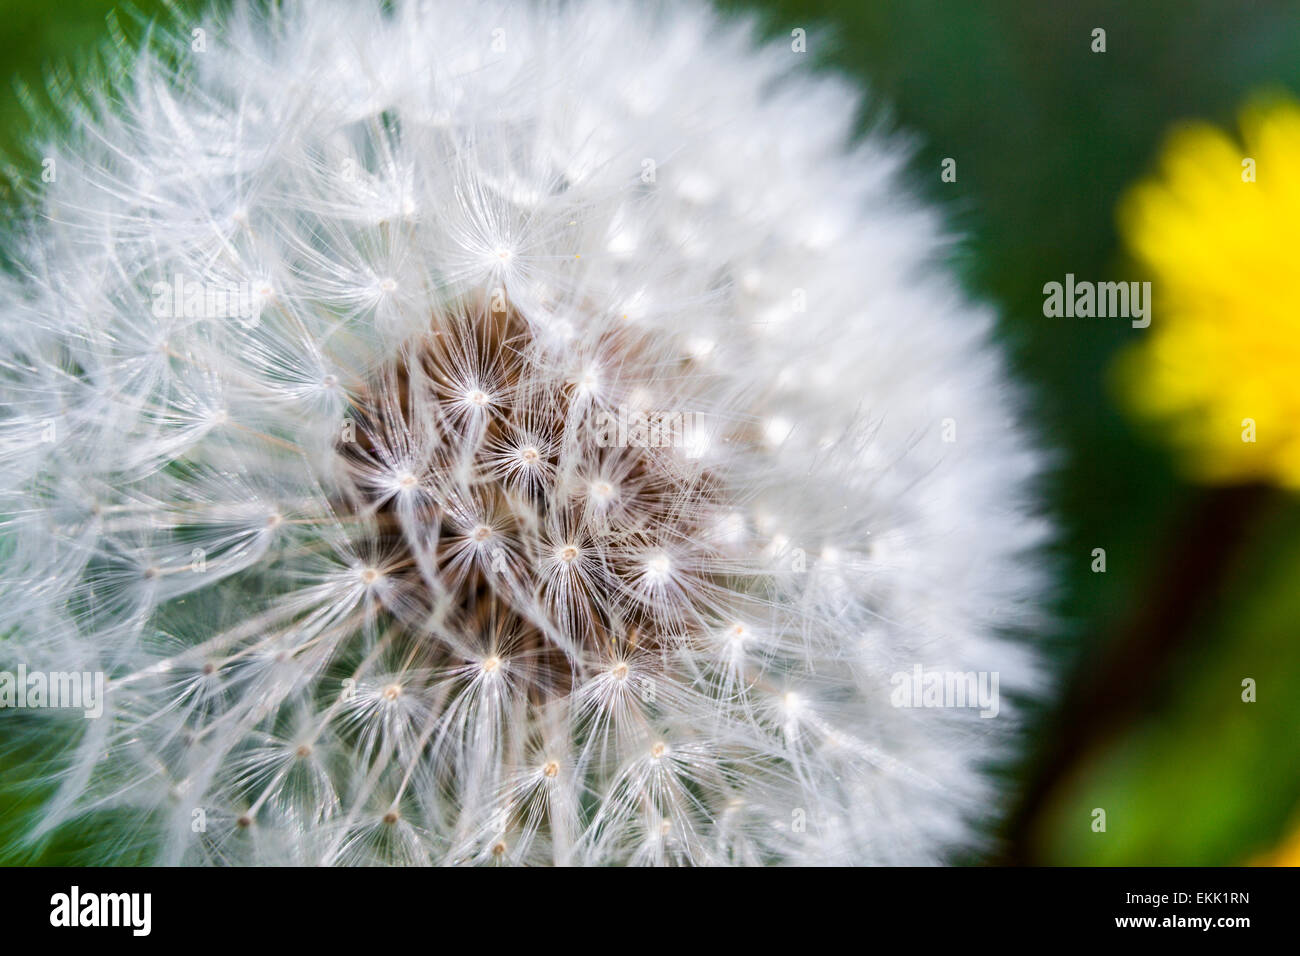 White mute swan feather on Common Dandelion clocks, blowballs (Taraxacum officinale) - Stock Image